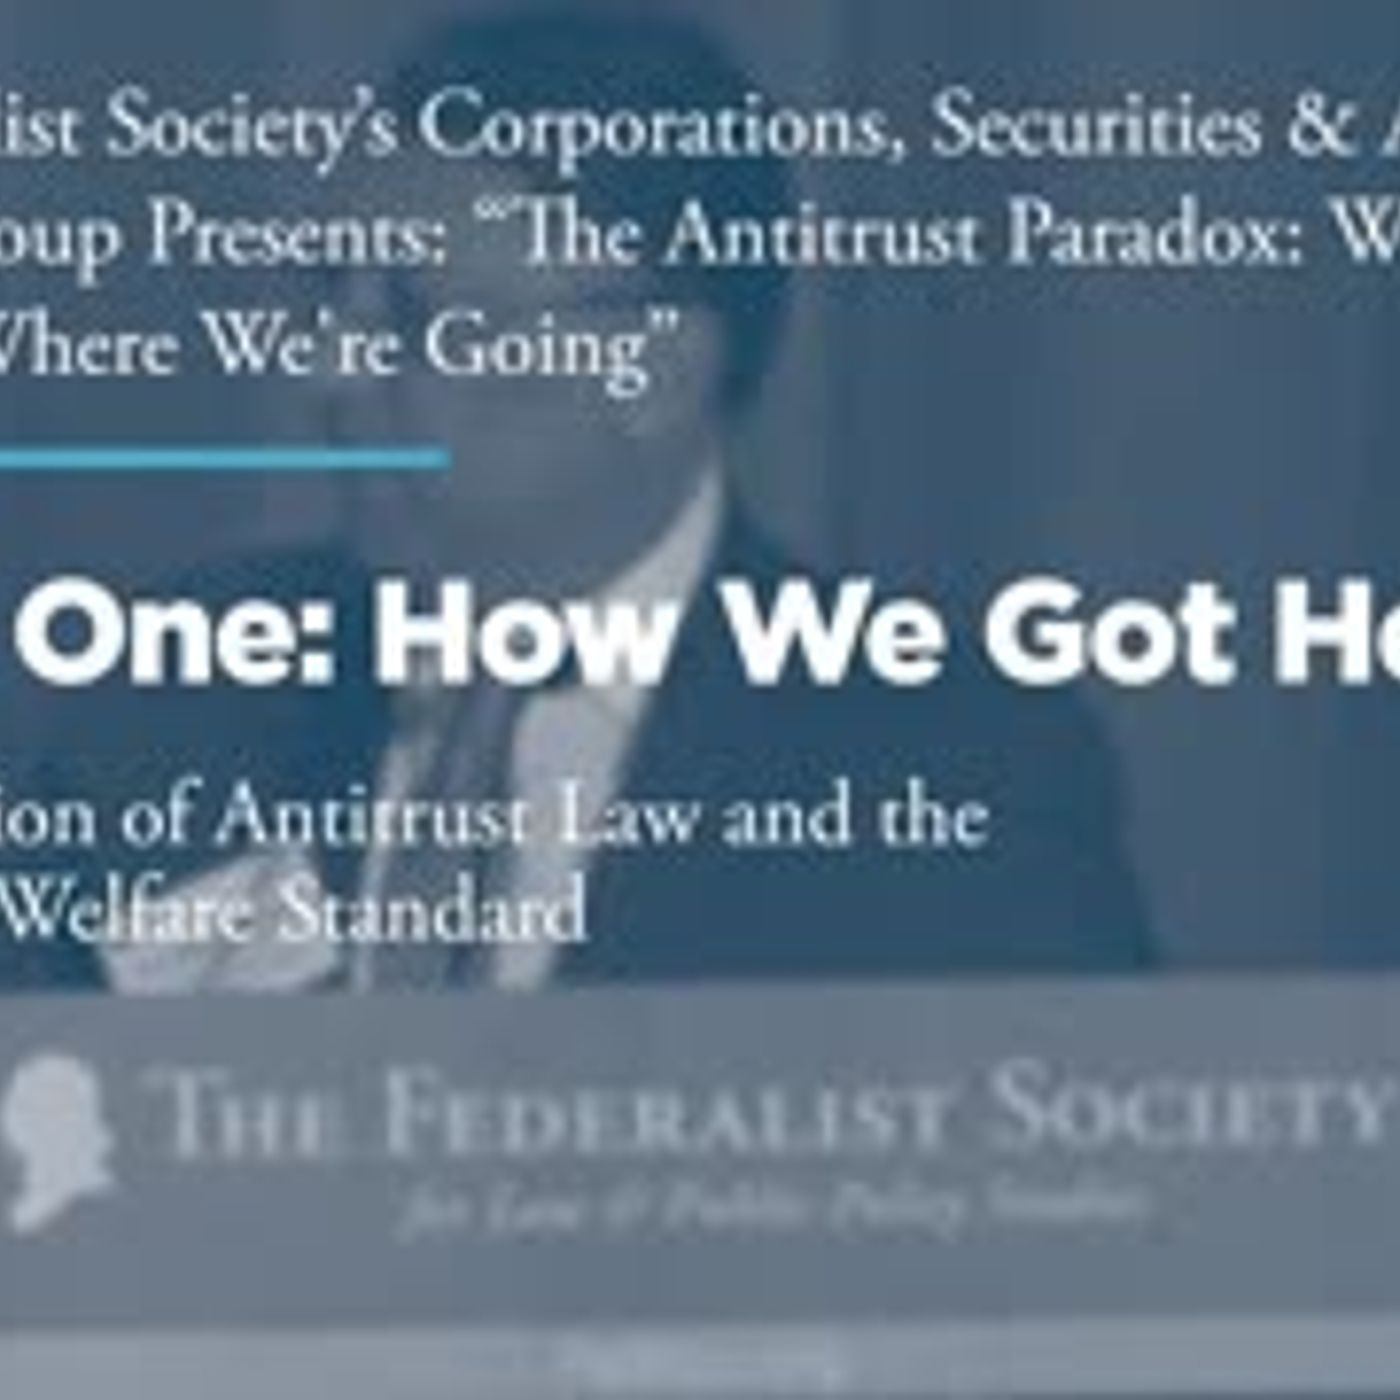 Panel One: How We Got Here: The Evolution of Antitrust Law and the Consumer Welfare Standard